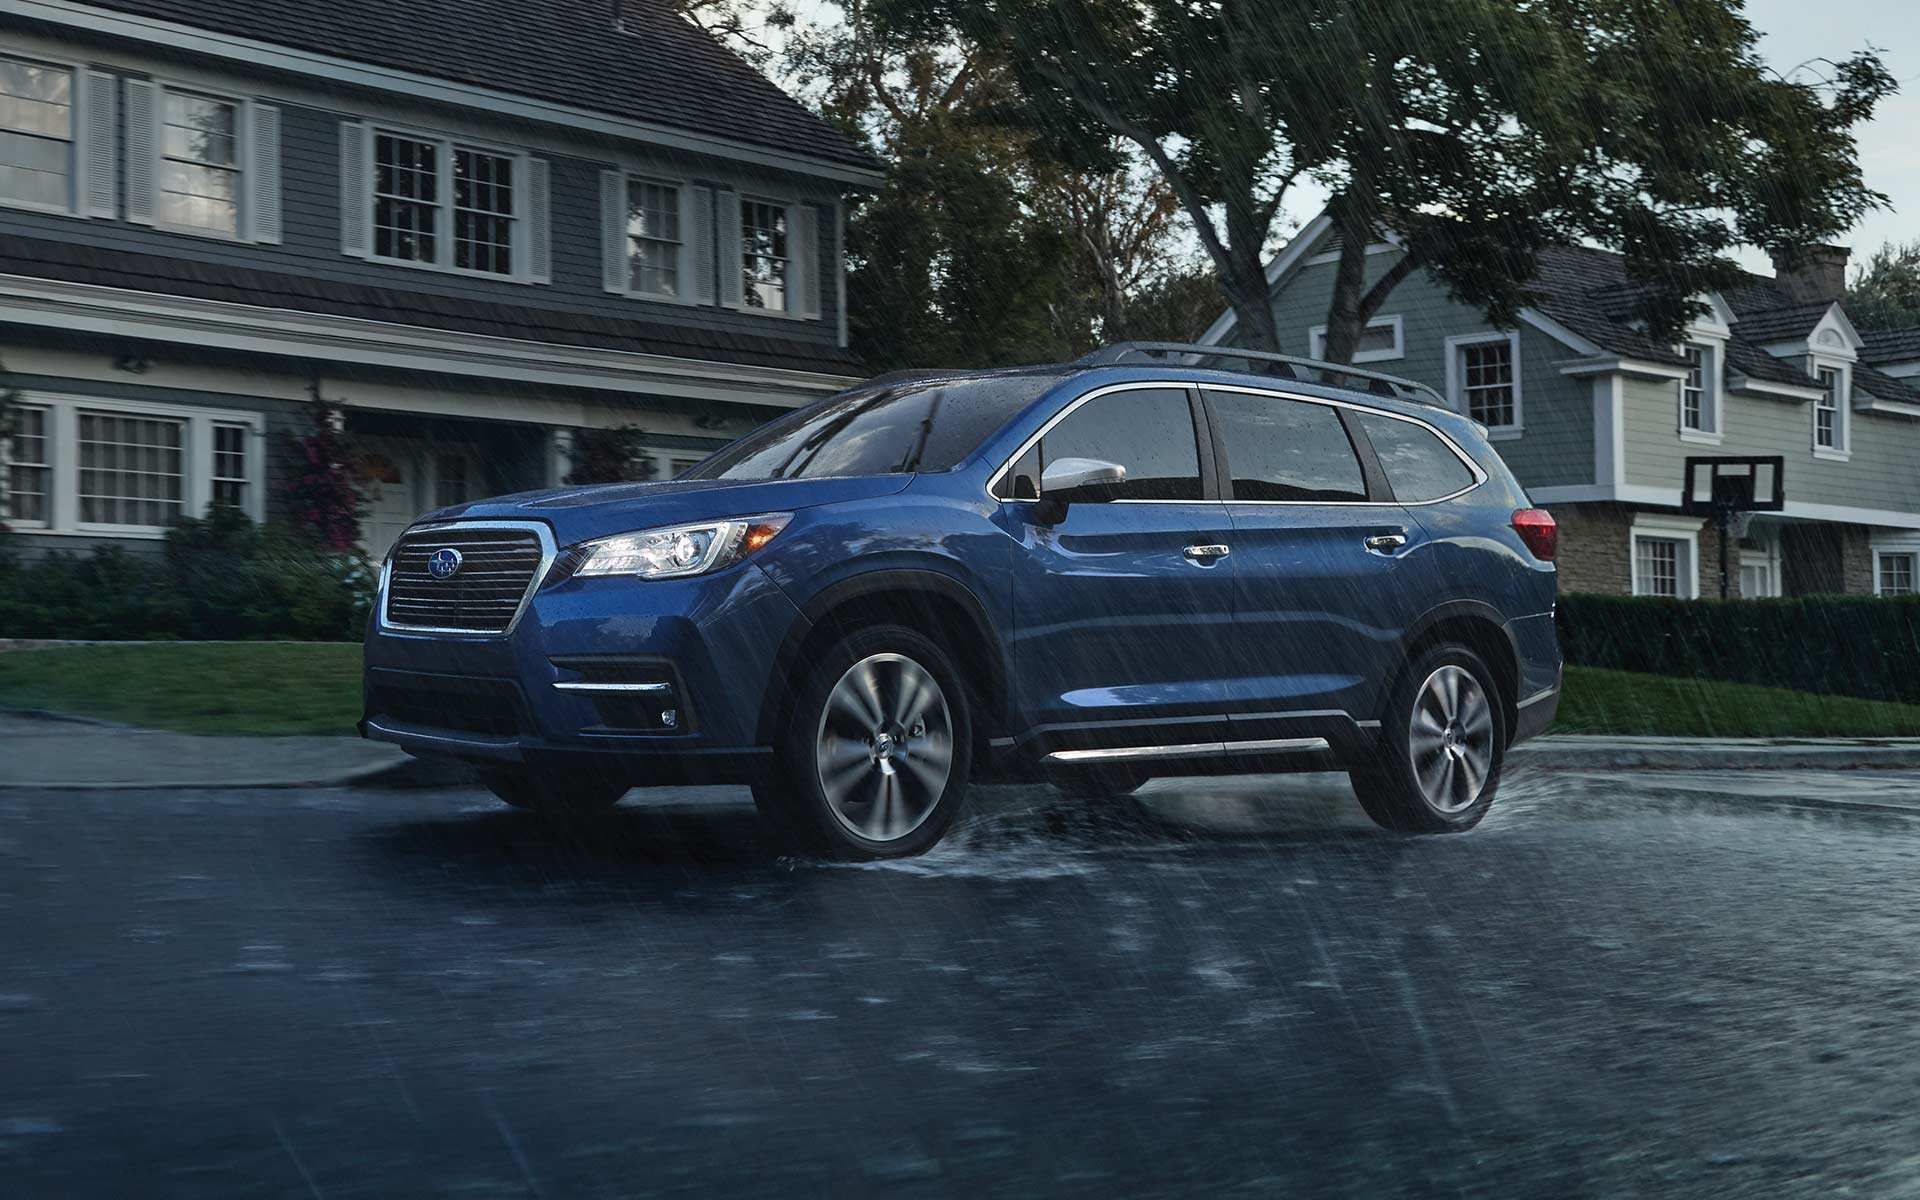 53 Gallery of 2019 Subaru Ascent News First Drive for 2019 Subaru Ascent News